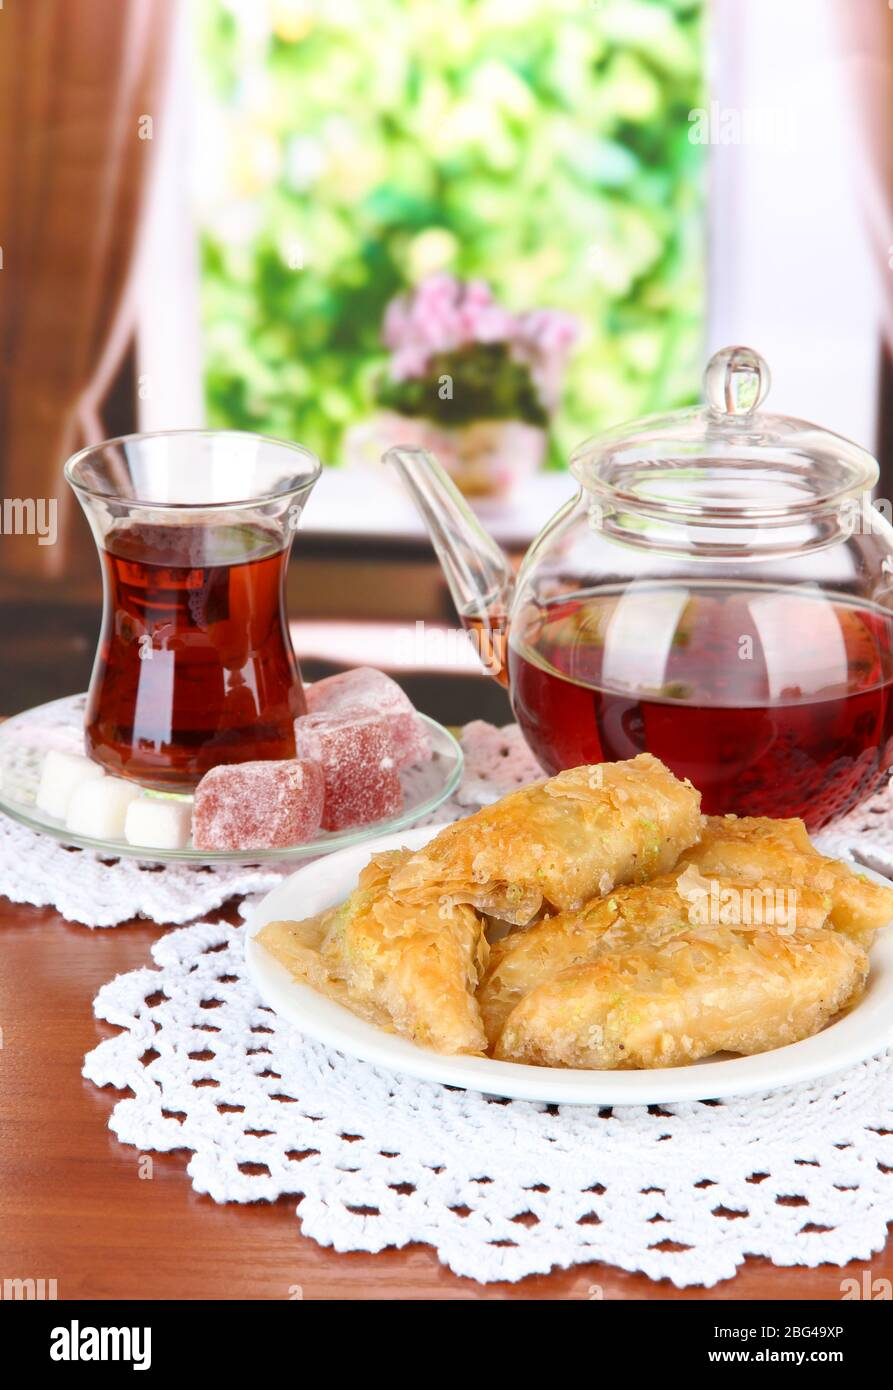 Sweet baklava on plate with tea on table in room Stock Photo